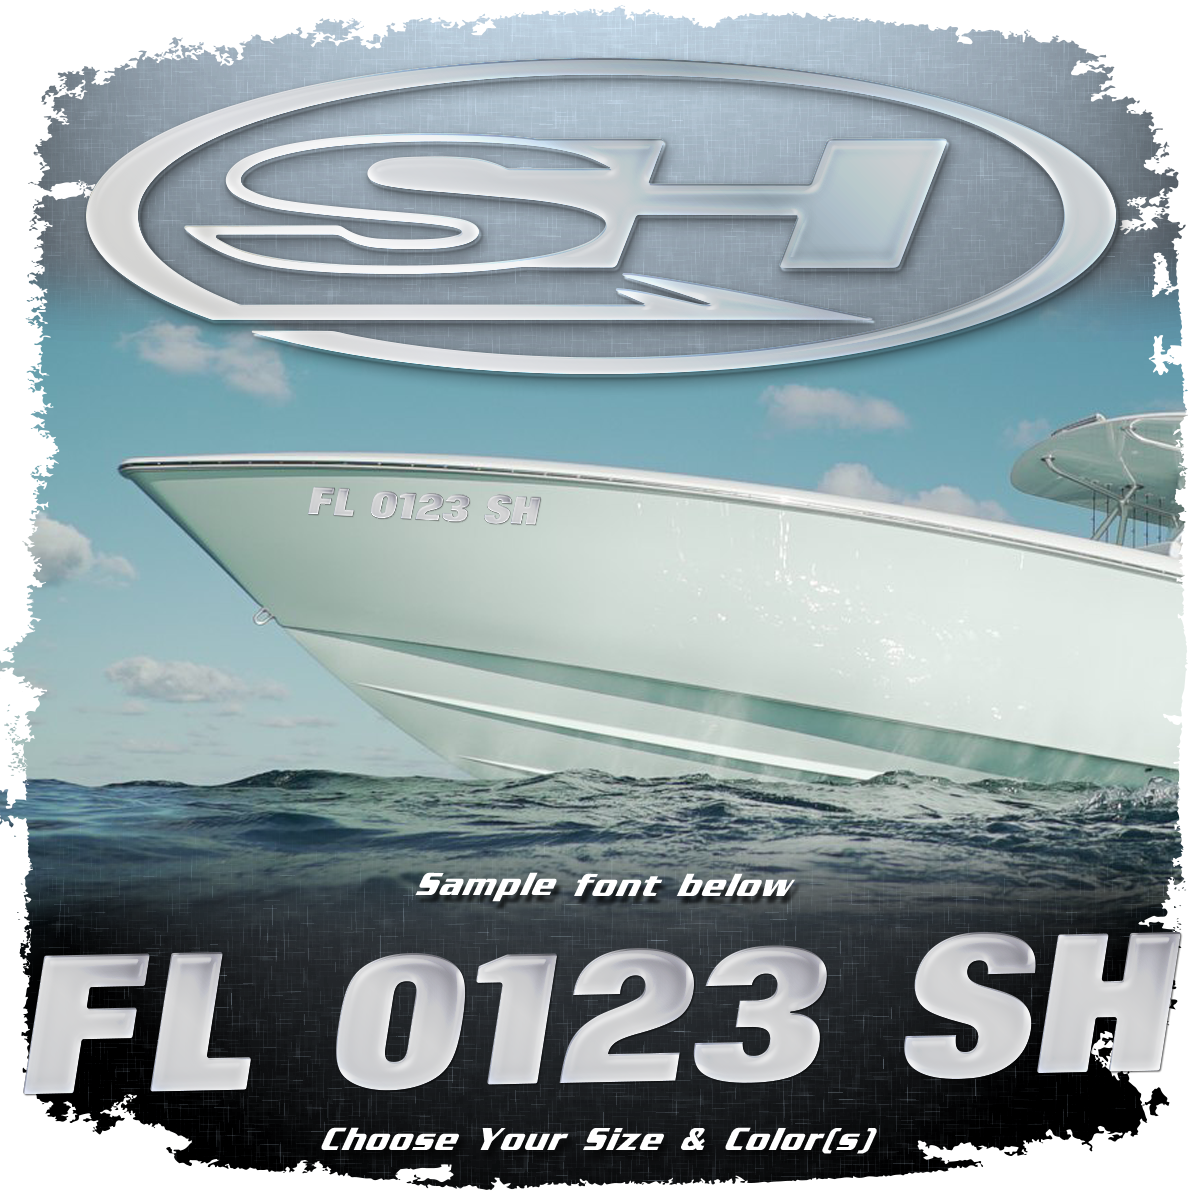 Sea Hunt Registration (2 included), Choose Your Own Colors